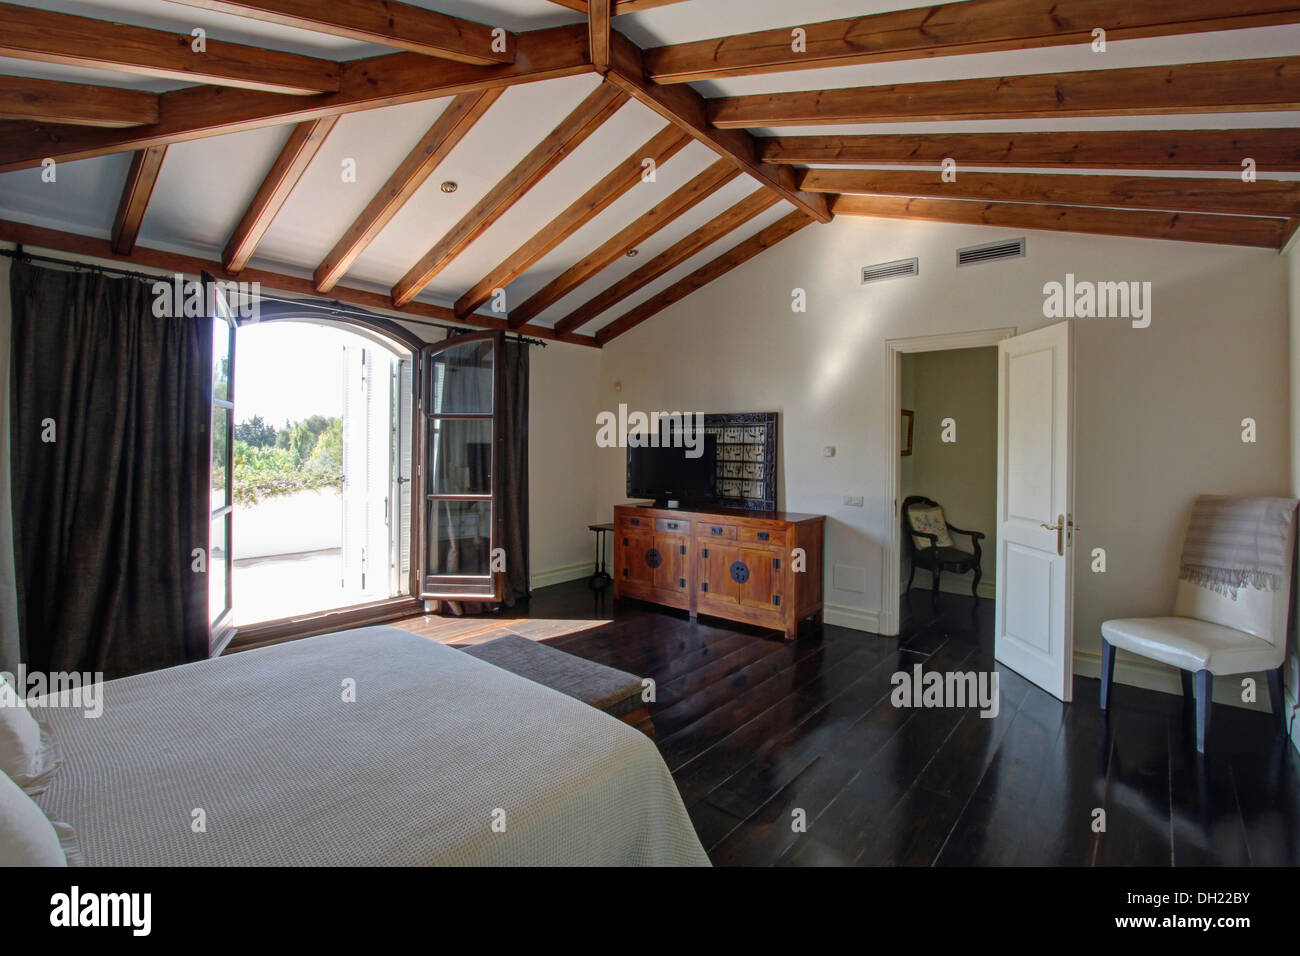 Polished Dark Wood Floor In Spanish Bedroom With Beamed Ceiling And Glass  Doors Open To Terrace